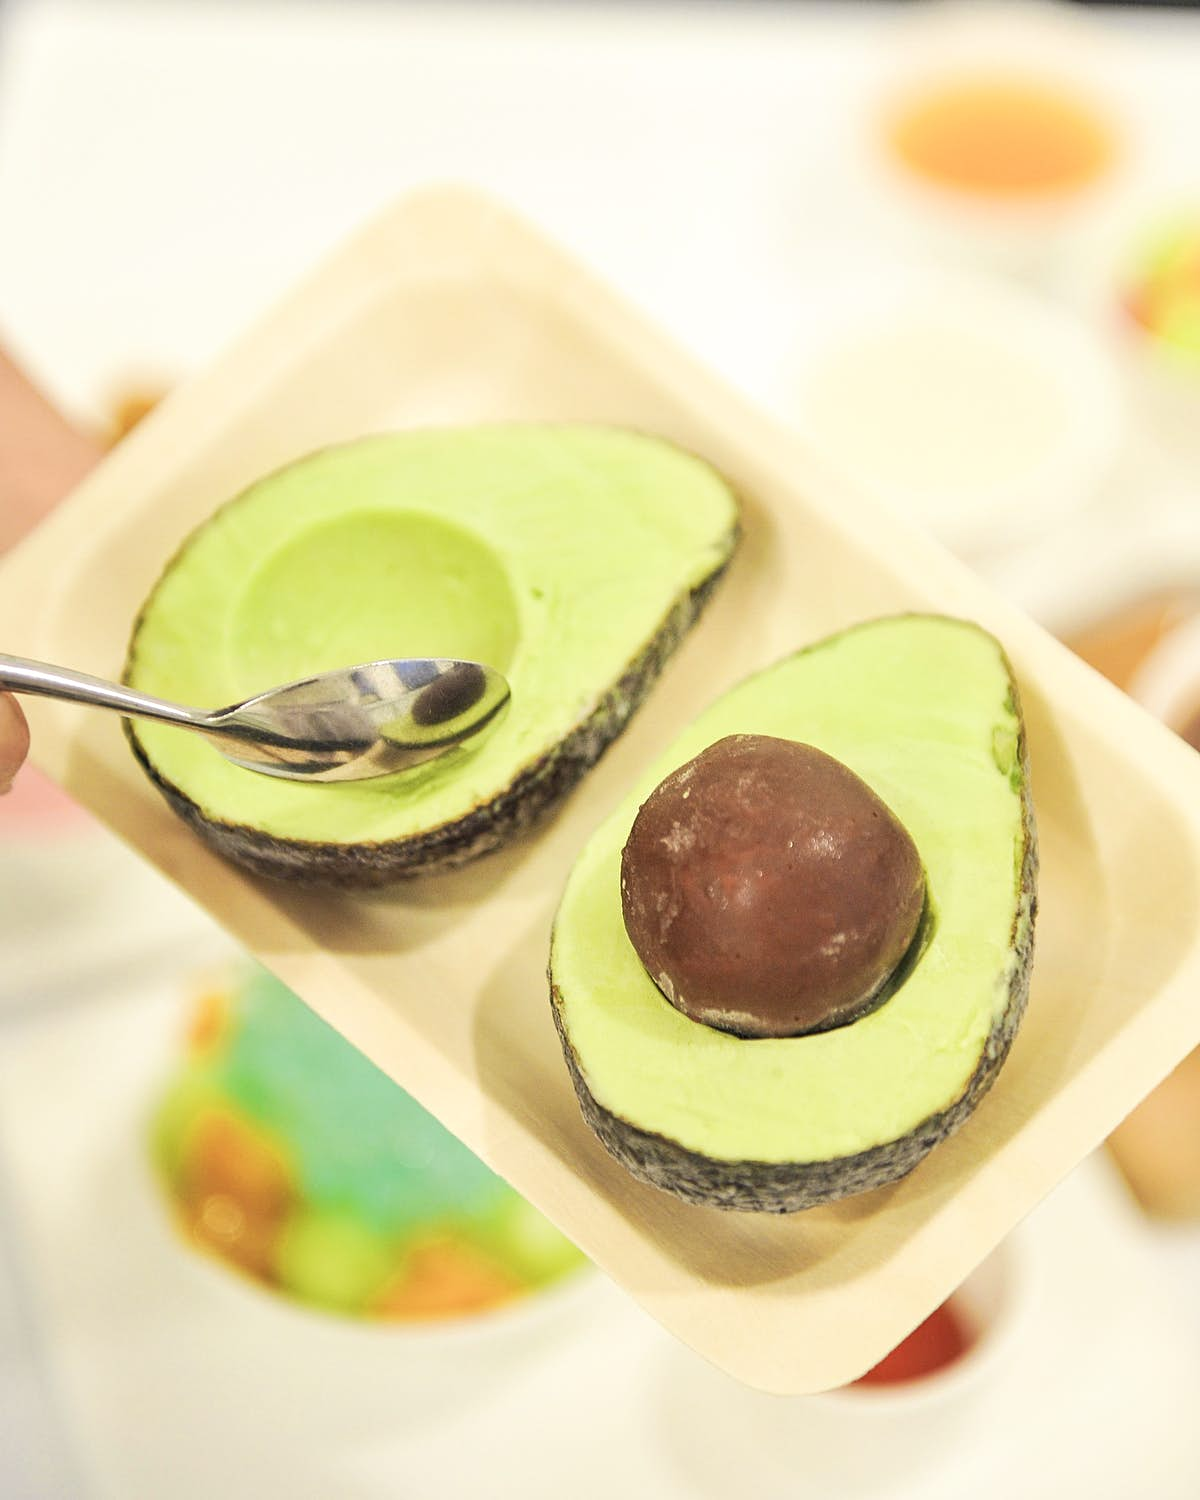 Melbourne takes avocado out of brunch and into dessert